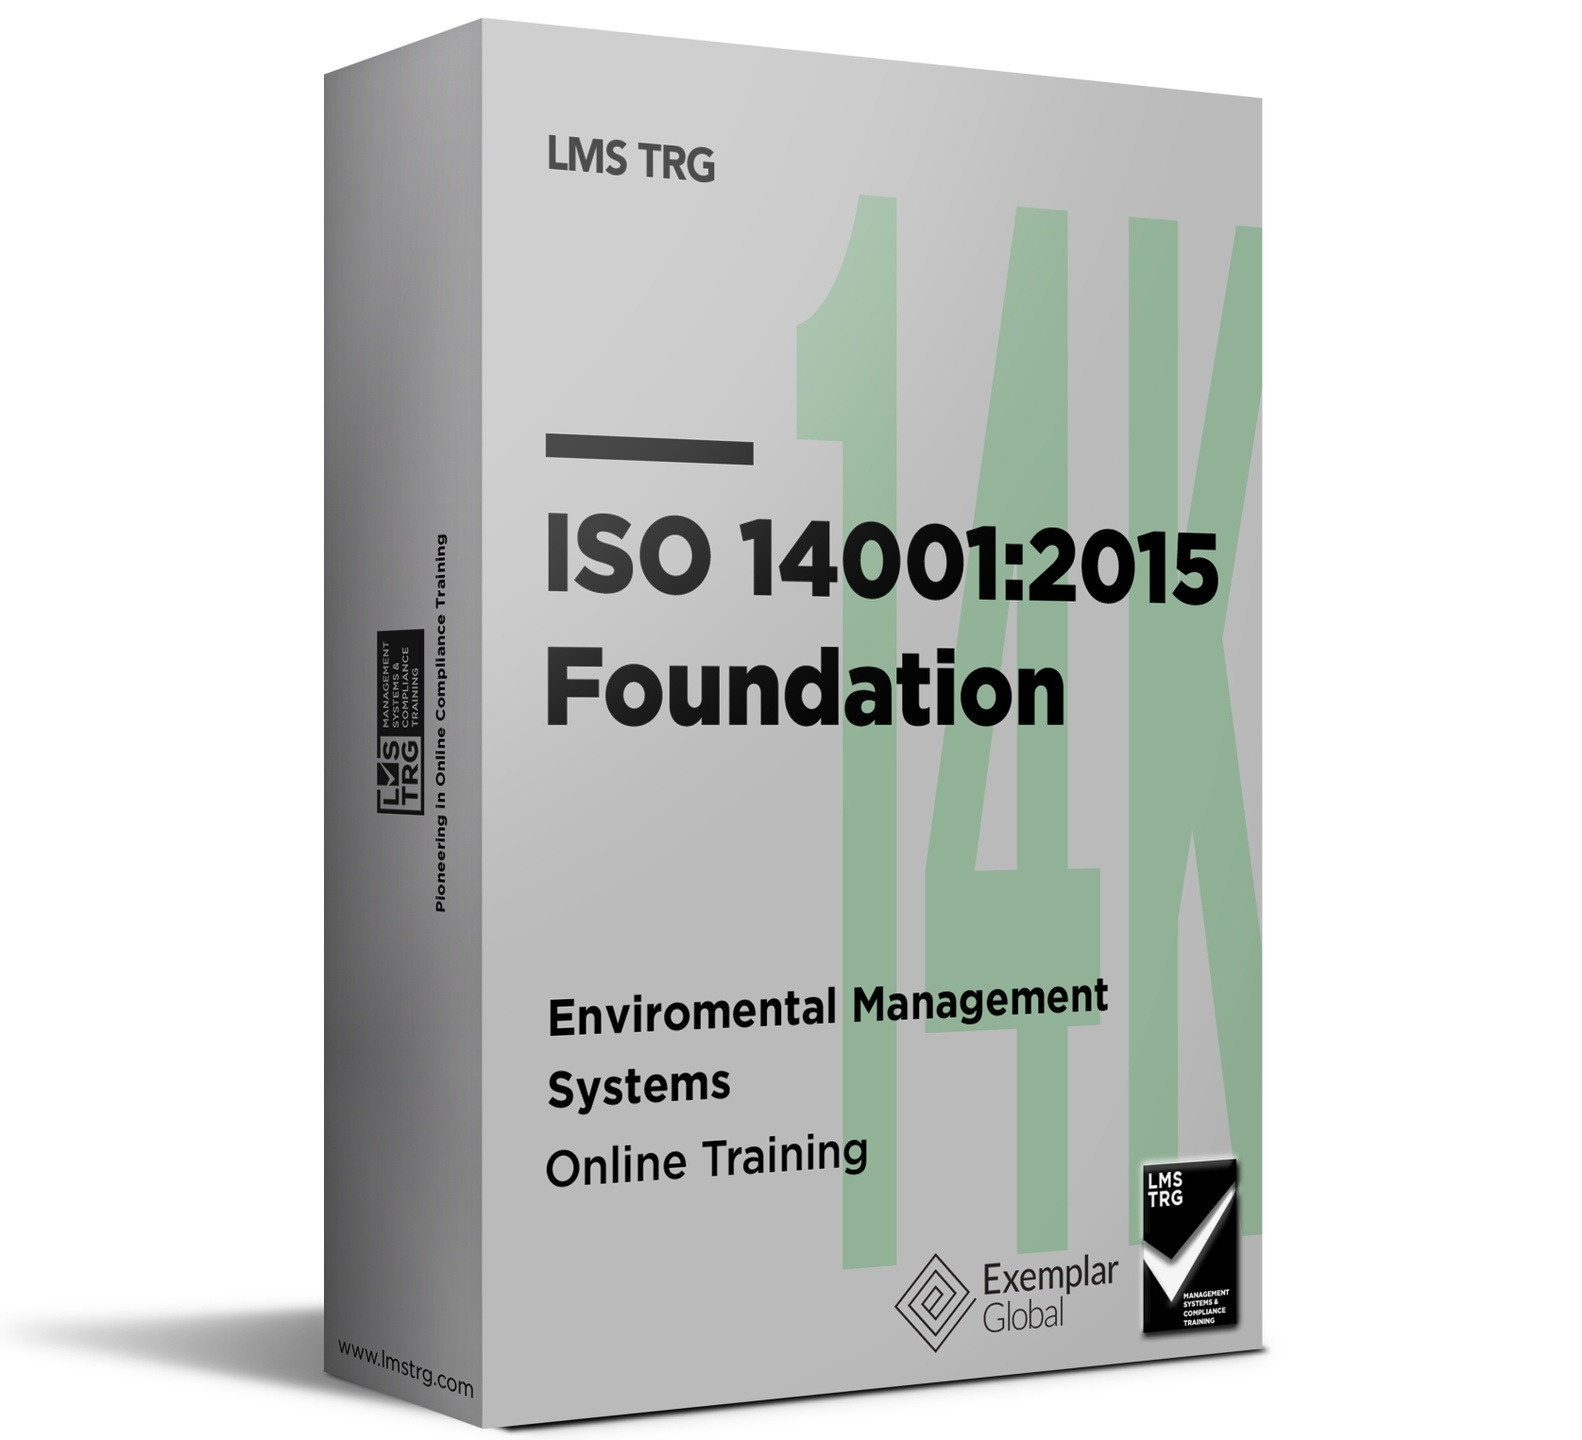 environmental management systems foundation iso 14001